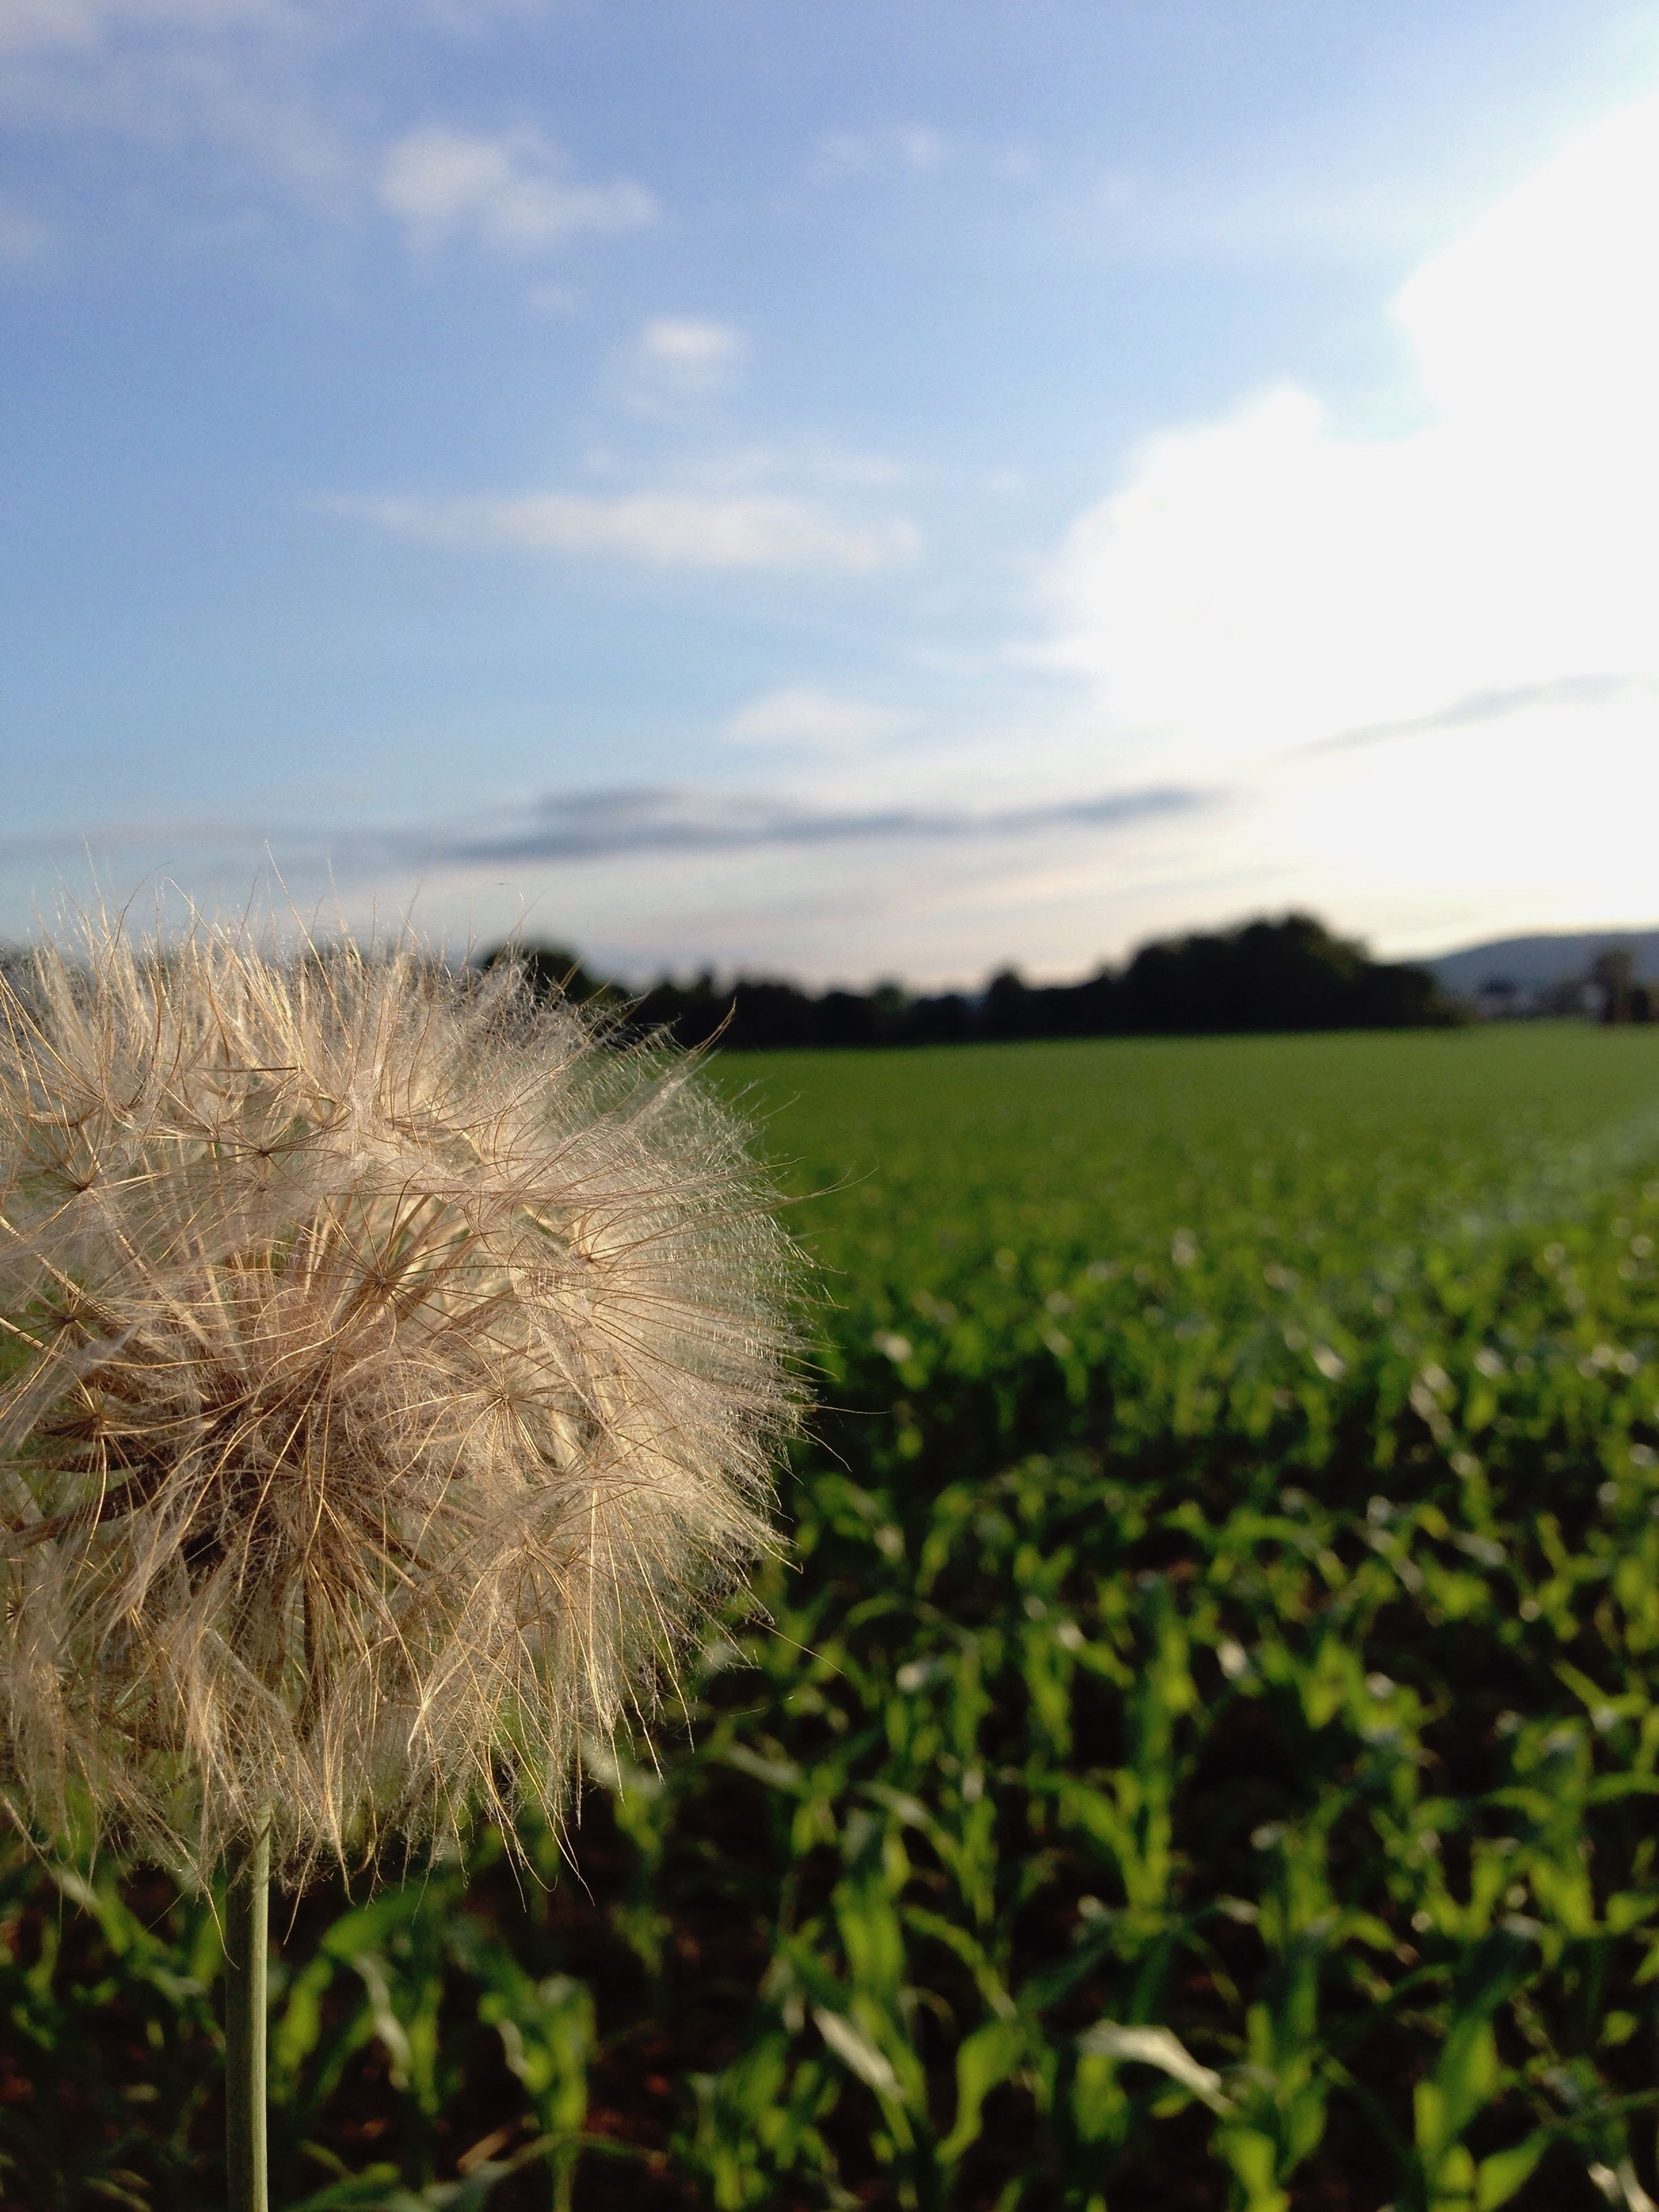 growth, flower, beauty in nature, freshness, field, nature, dandelion, sky, plant, fragility, tranquility, tranquil scene, landscape, flower head, wildflower, rural scene, close-up, focus on foreground, stem, scenics